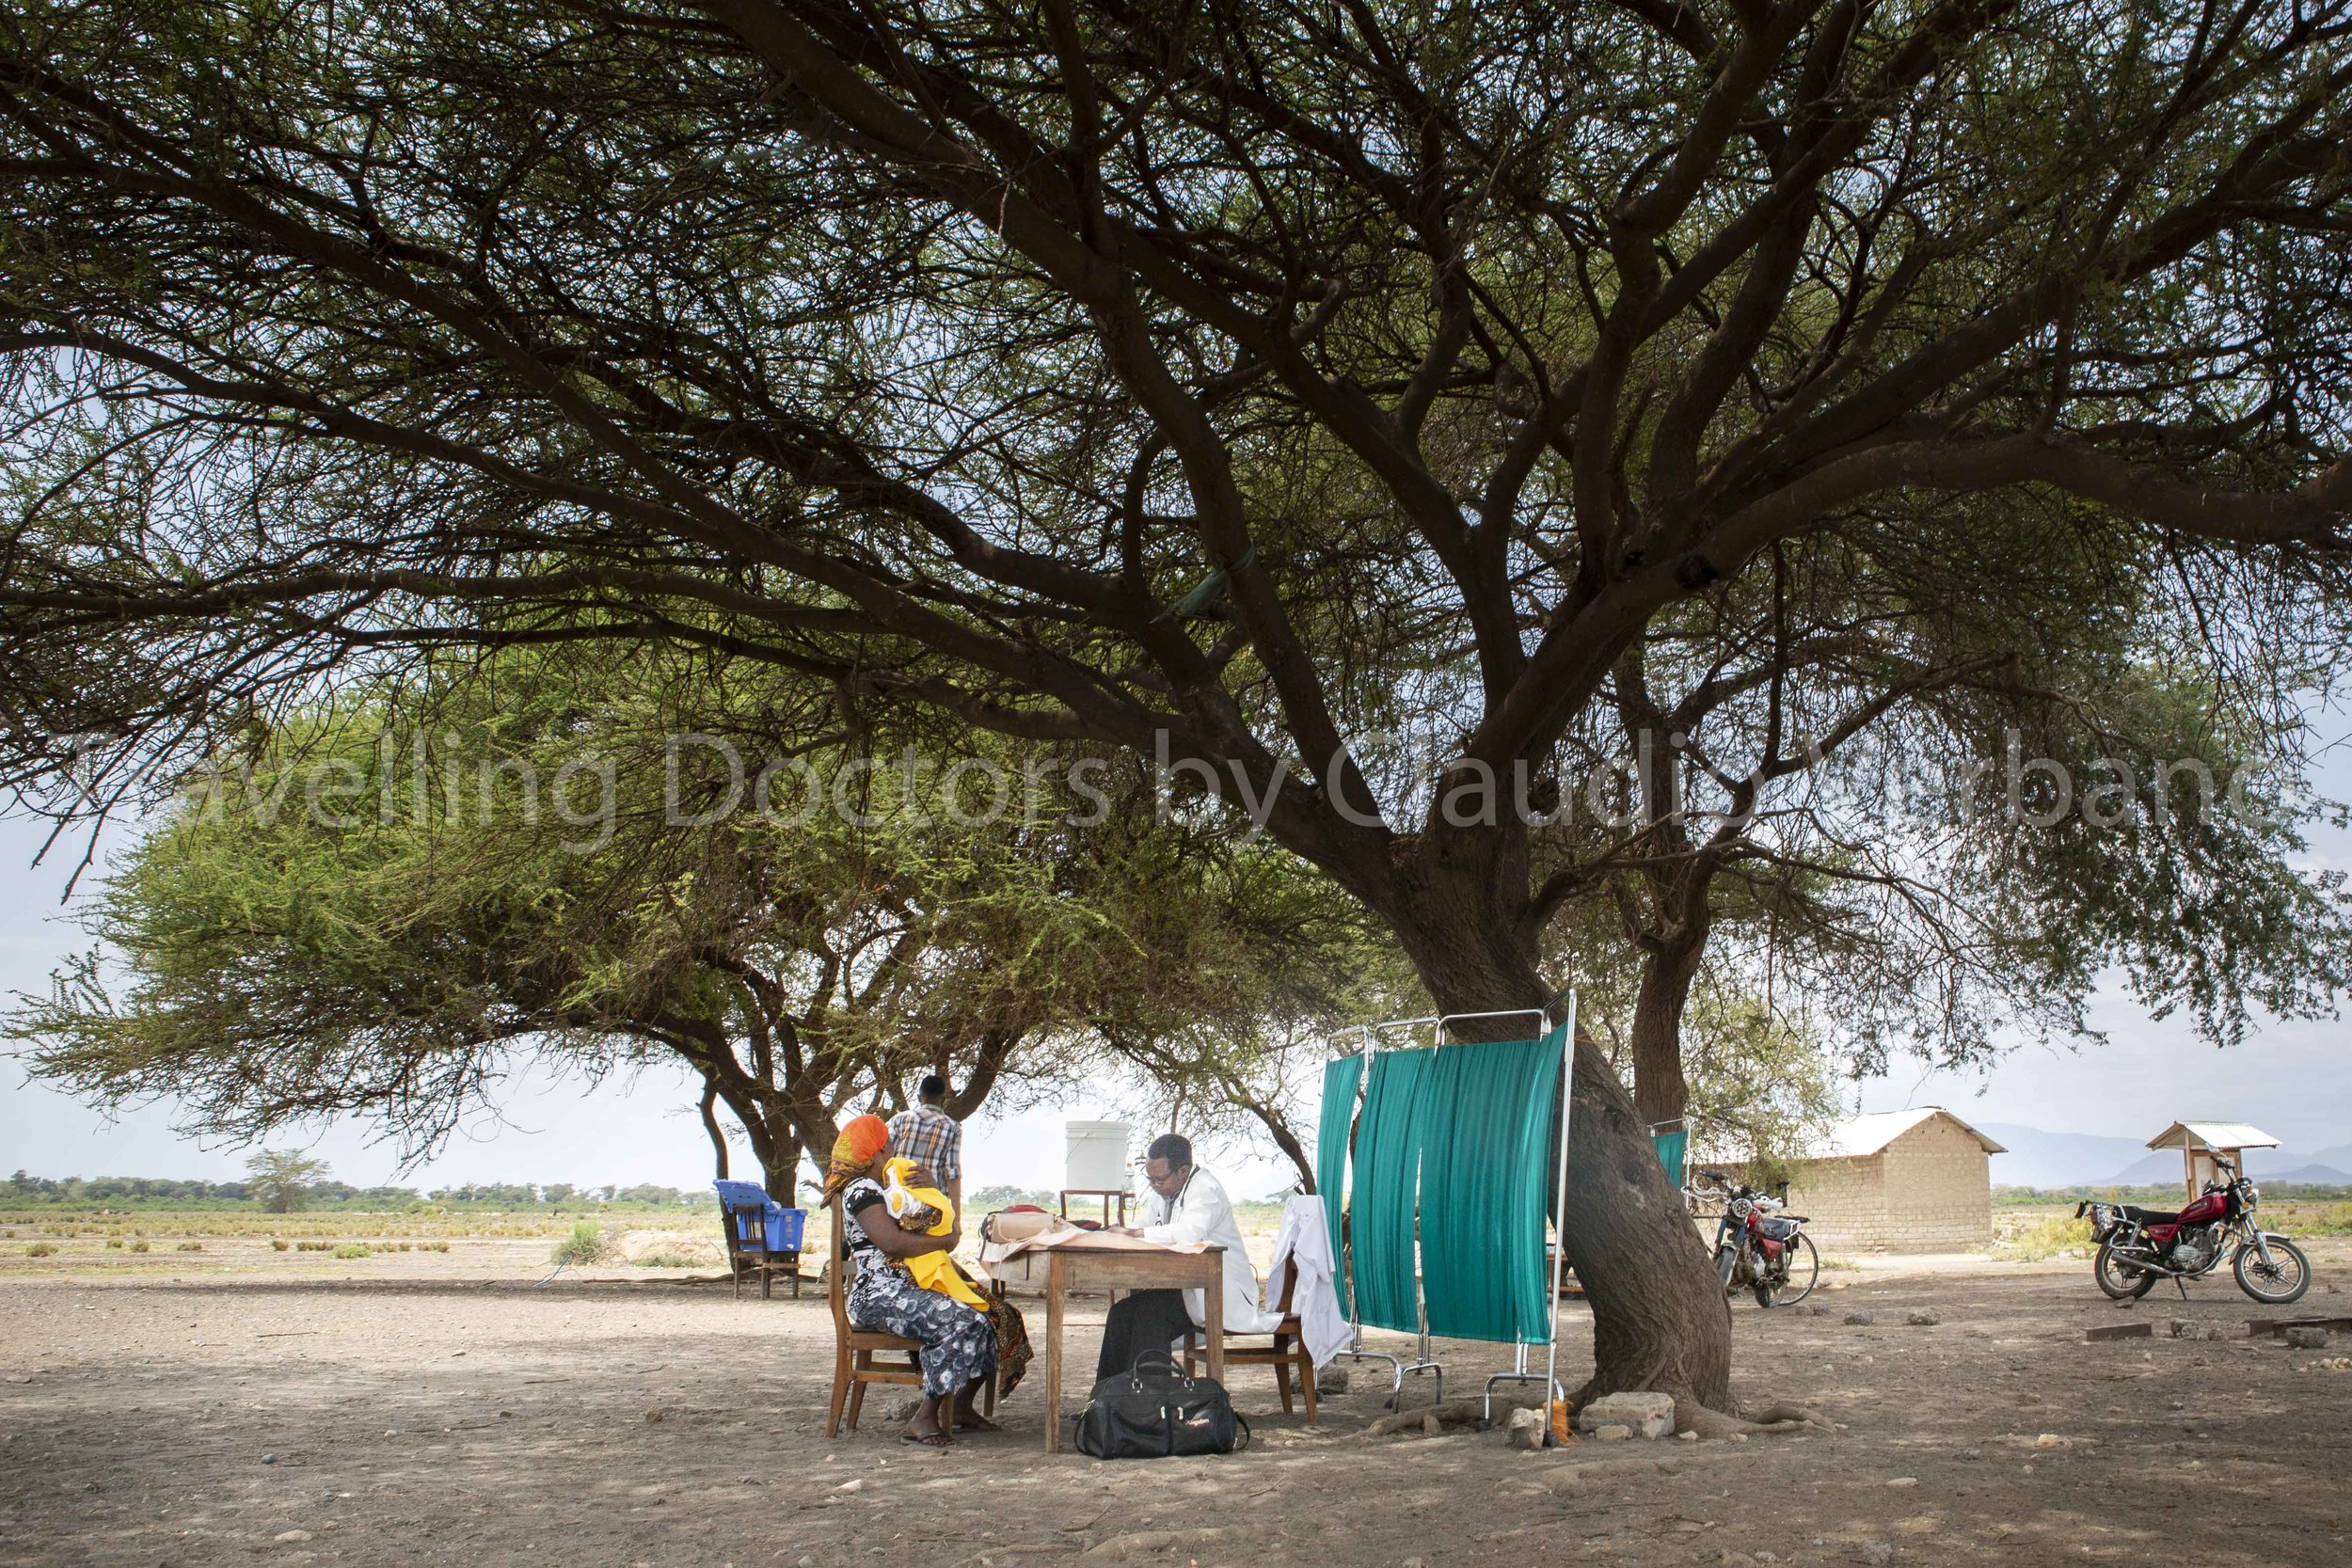 Travelling Doctors Tanzania by Claudio Verbano-5.jpg